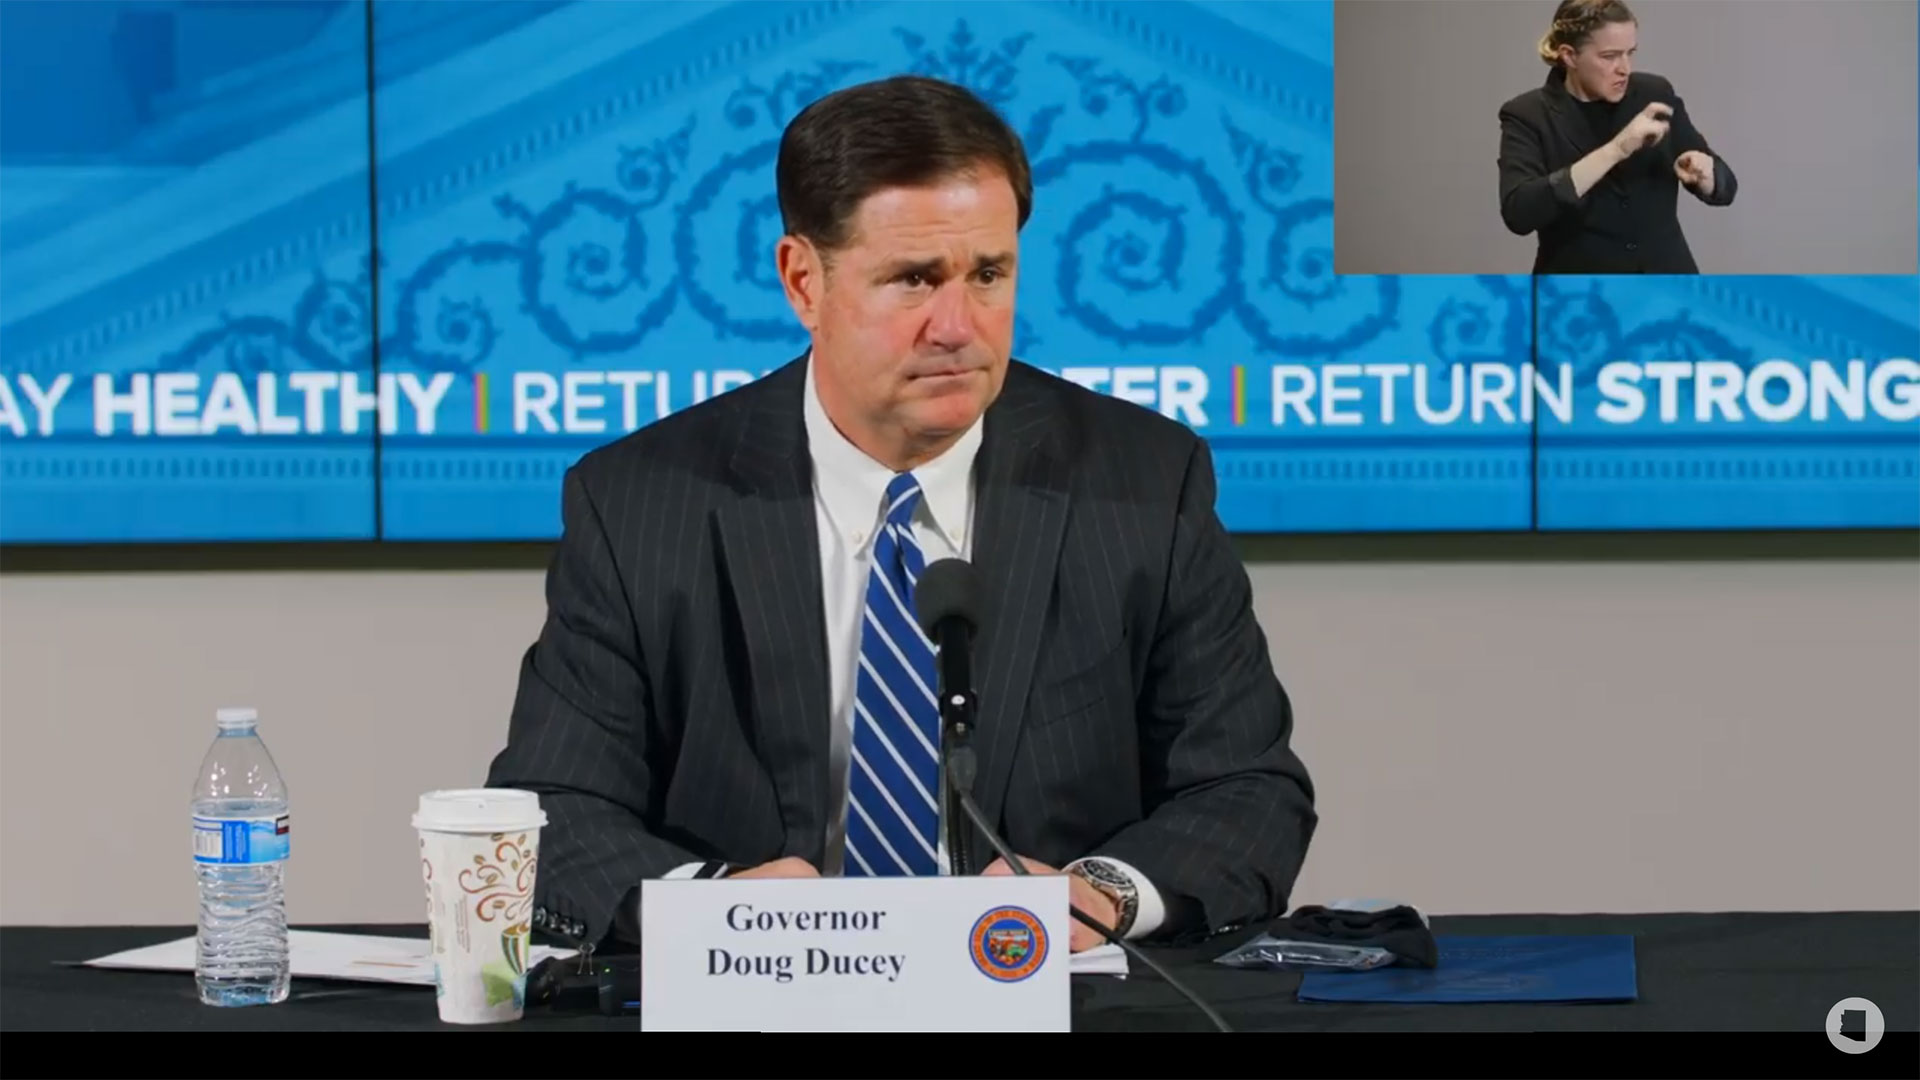 Gov. Doug Ducey at a press conference on June 11, 2020.